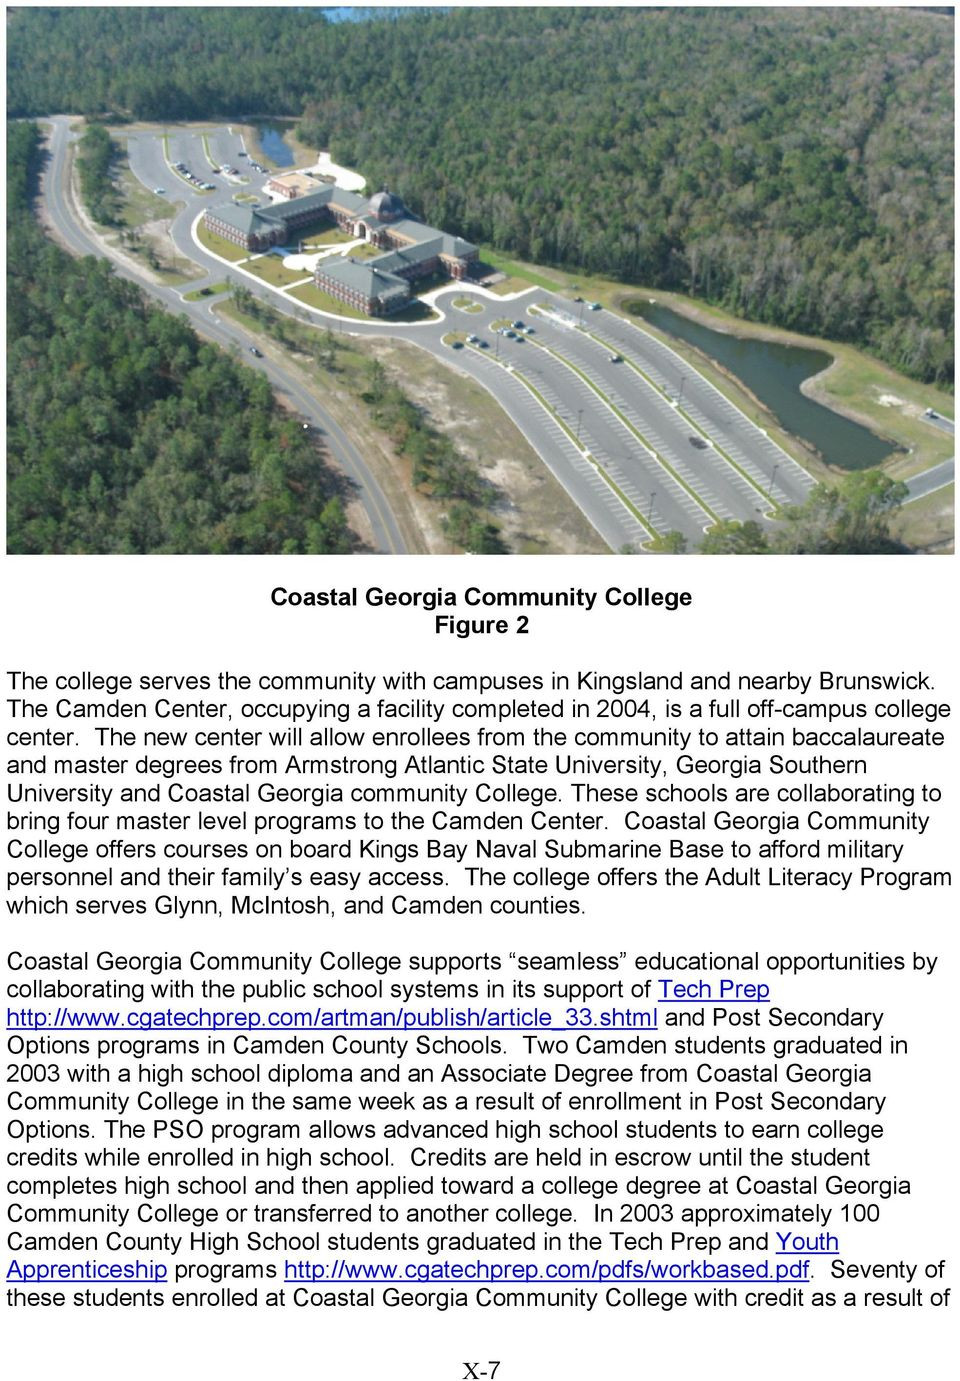 The new center will allow enrollees from the community to attain baccalaureate and master degrees from Armstrong Atlantic State University, Georgia Southern University and Coastal Georgia community